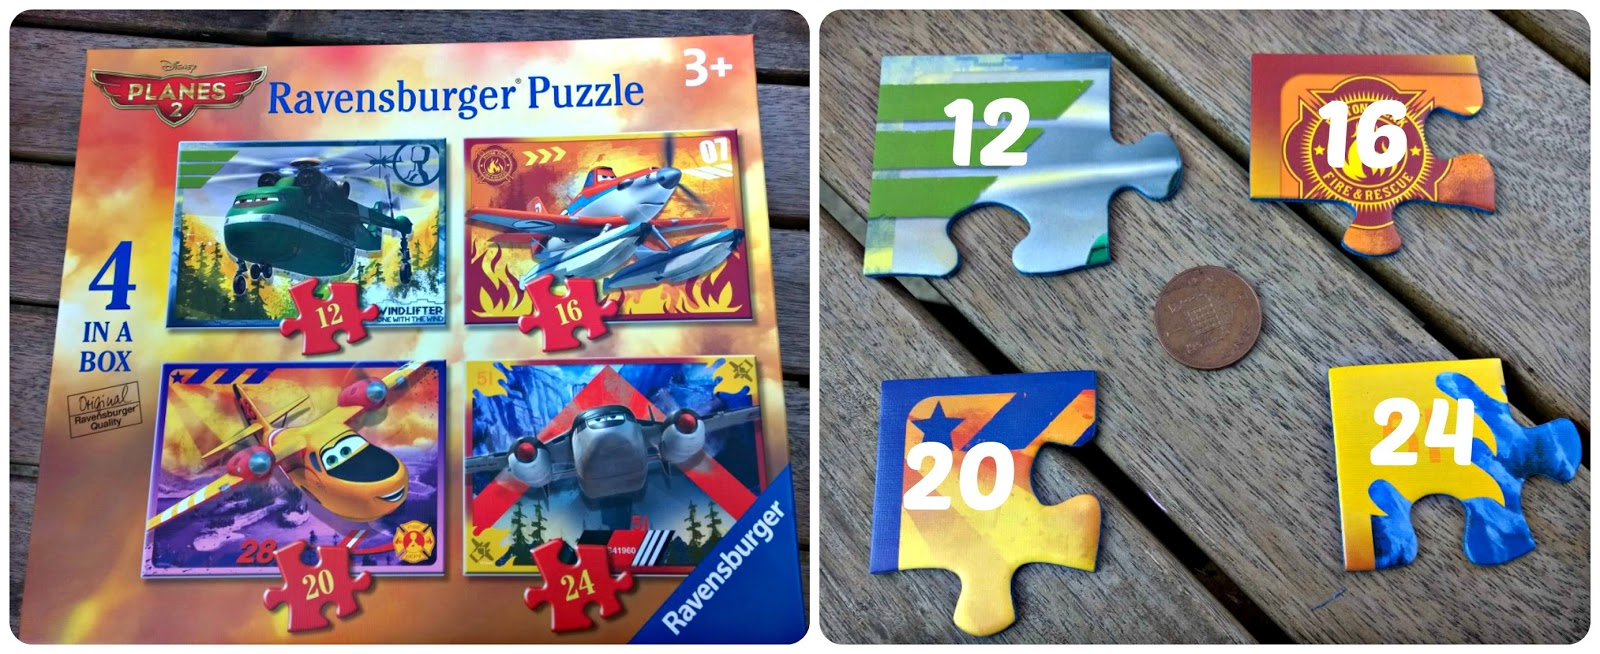 Disney Planes 2: Fire and Rescue 4 in a box Jigsaw Puzzle from Ravensburger